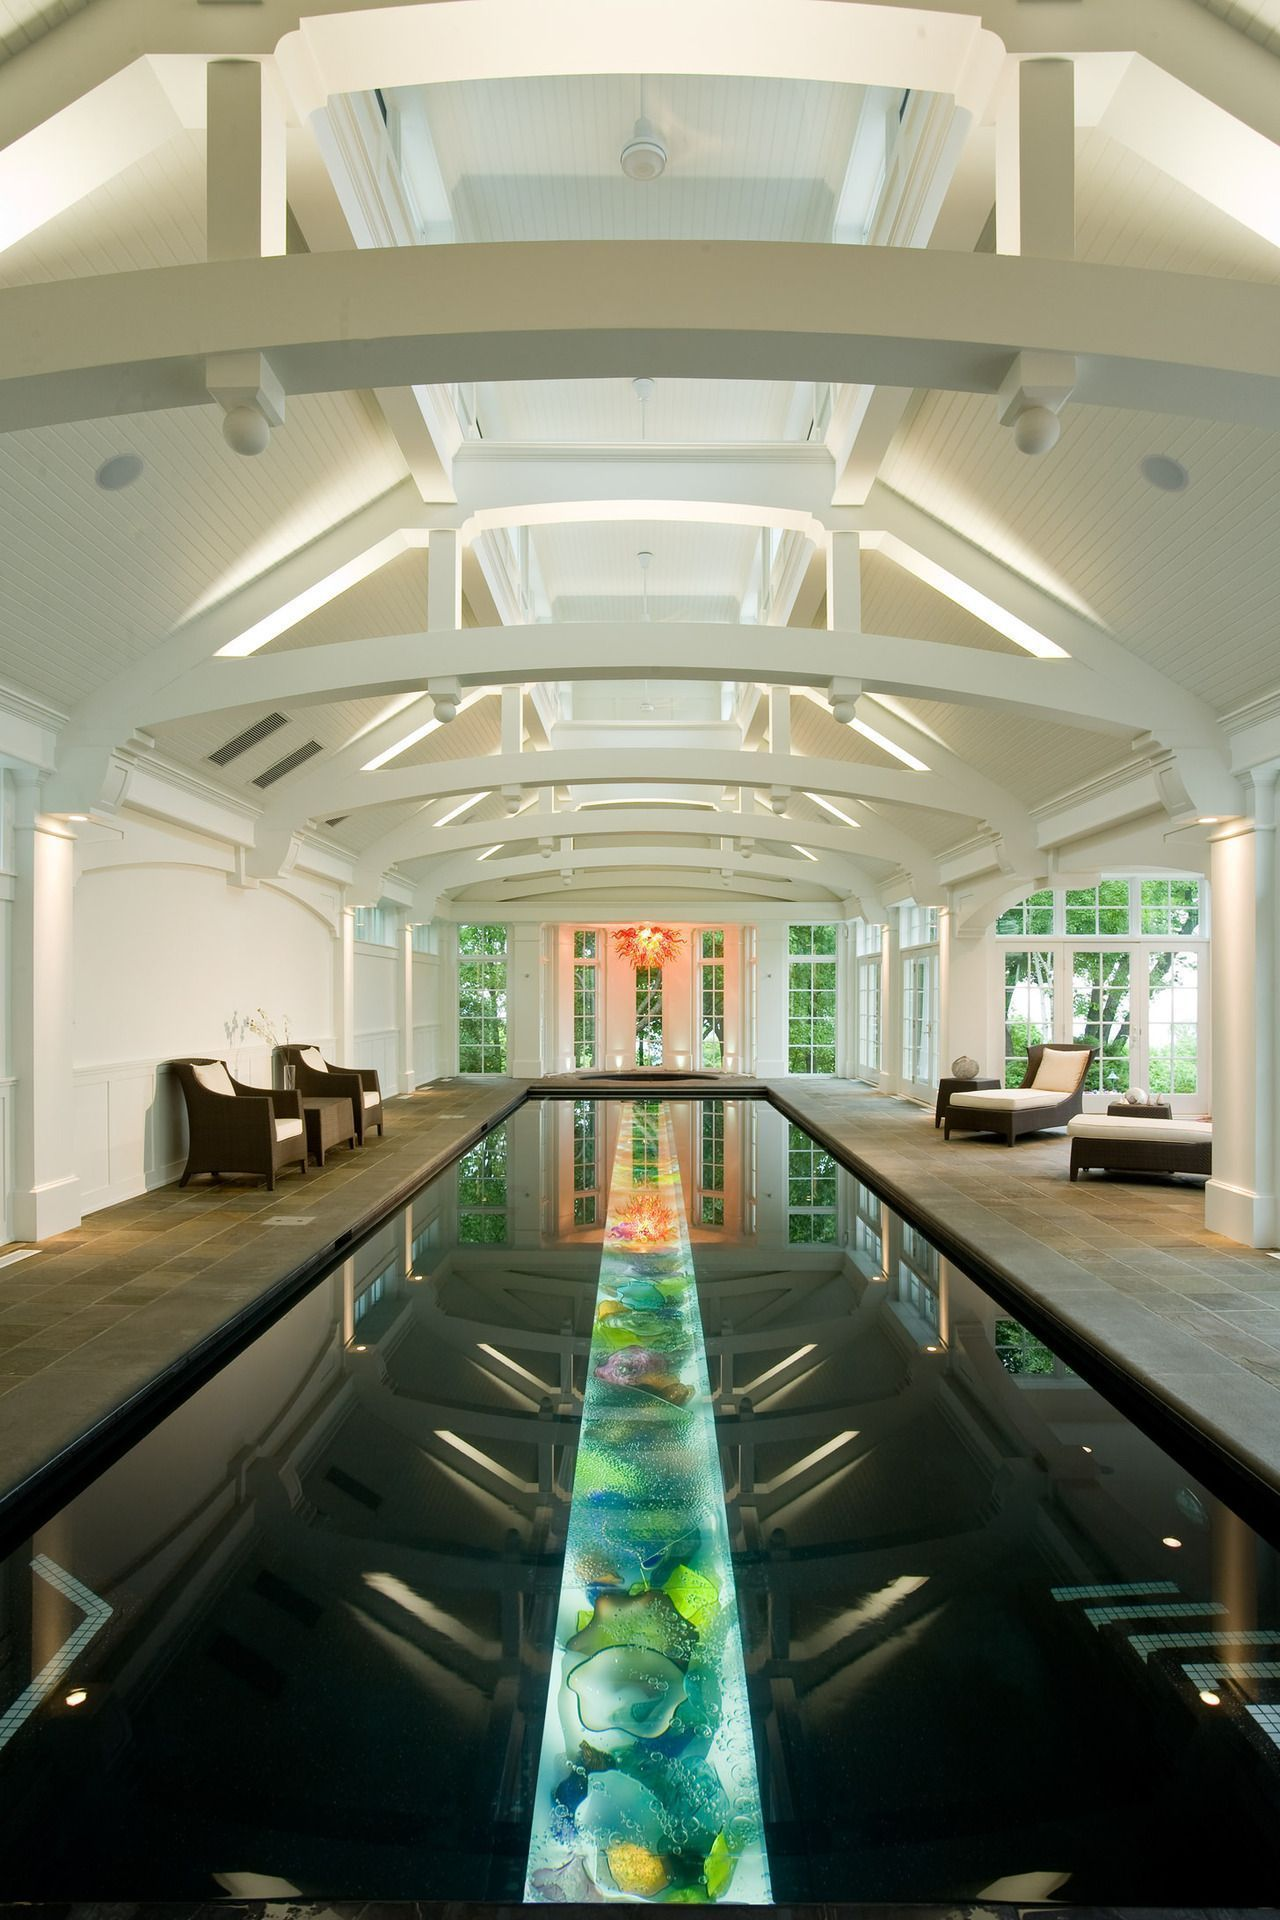 Indoor Pool Room Features A Vaulted Ceiling And A Lap